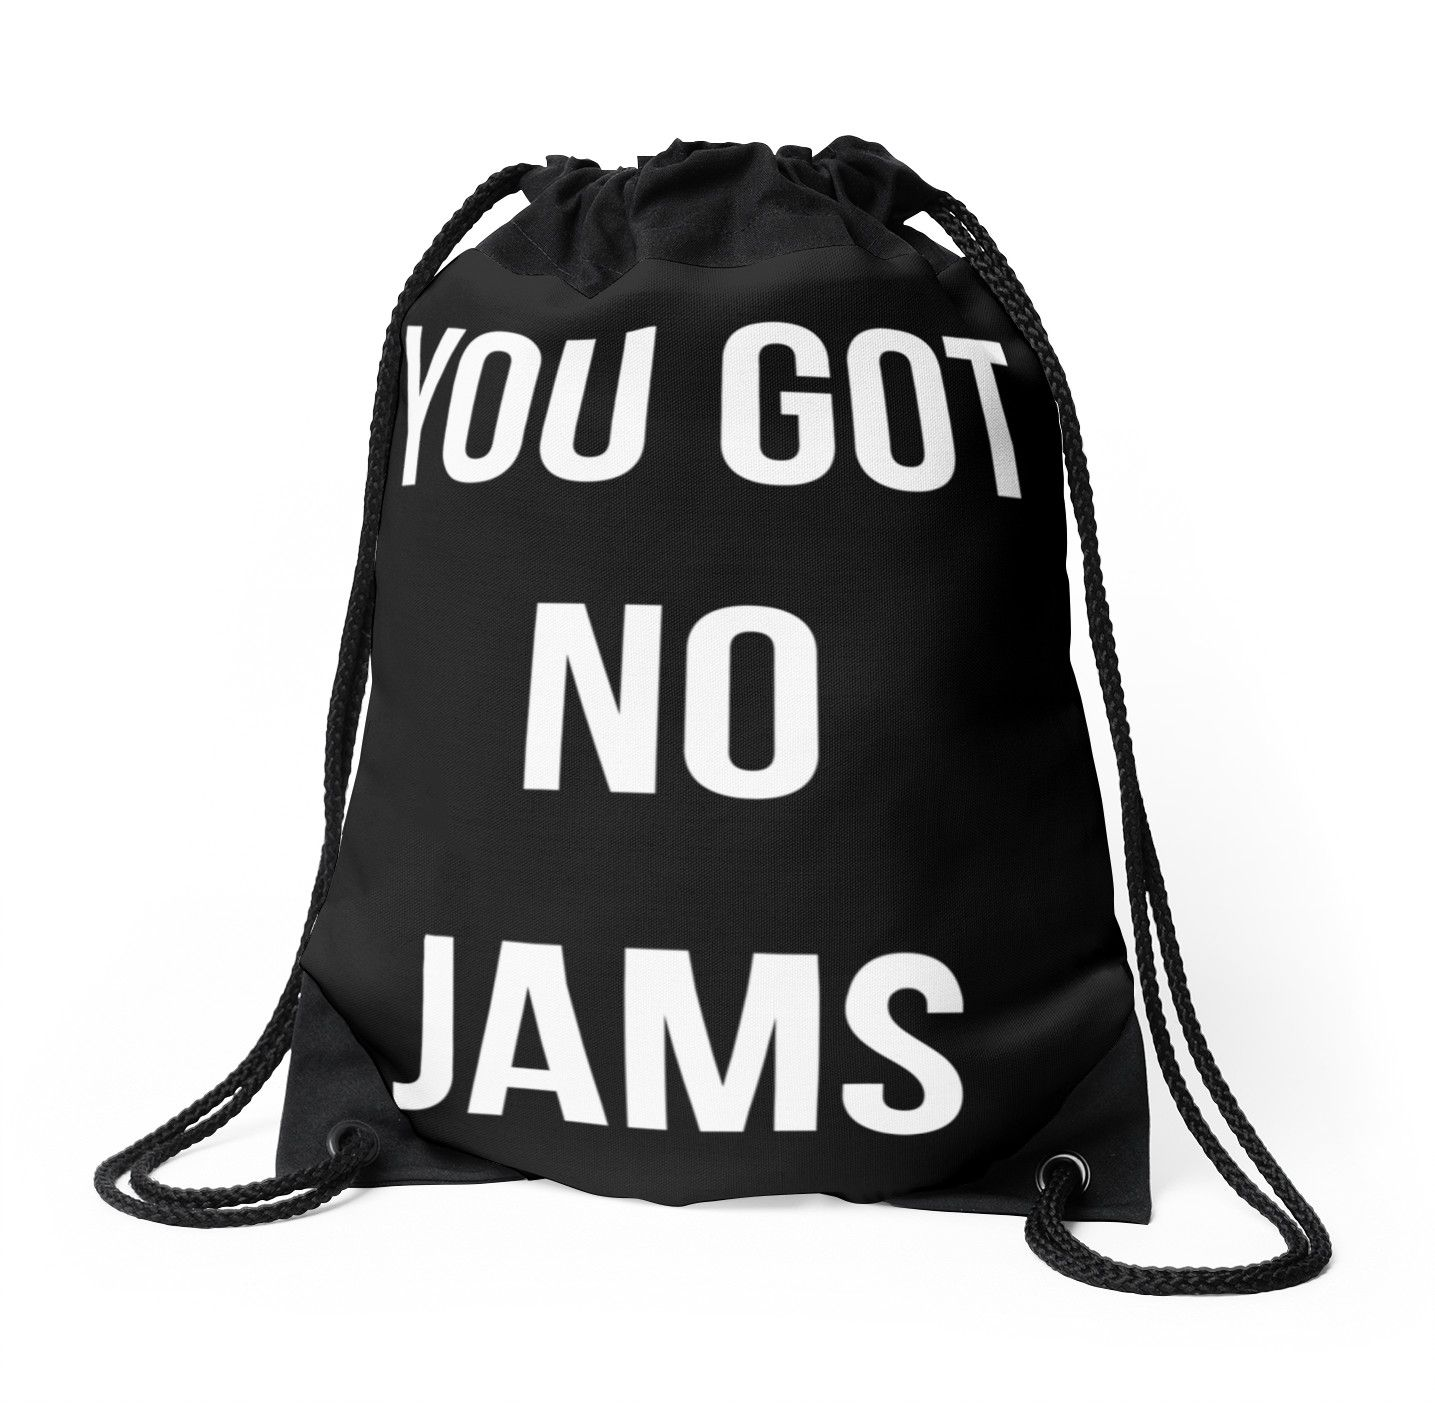 You Got No Jams White Drawstring Bag By Nitewalker314 Bts Merch Bts Inspired Outfits Kpop Merch